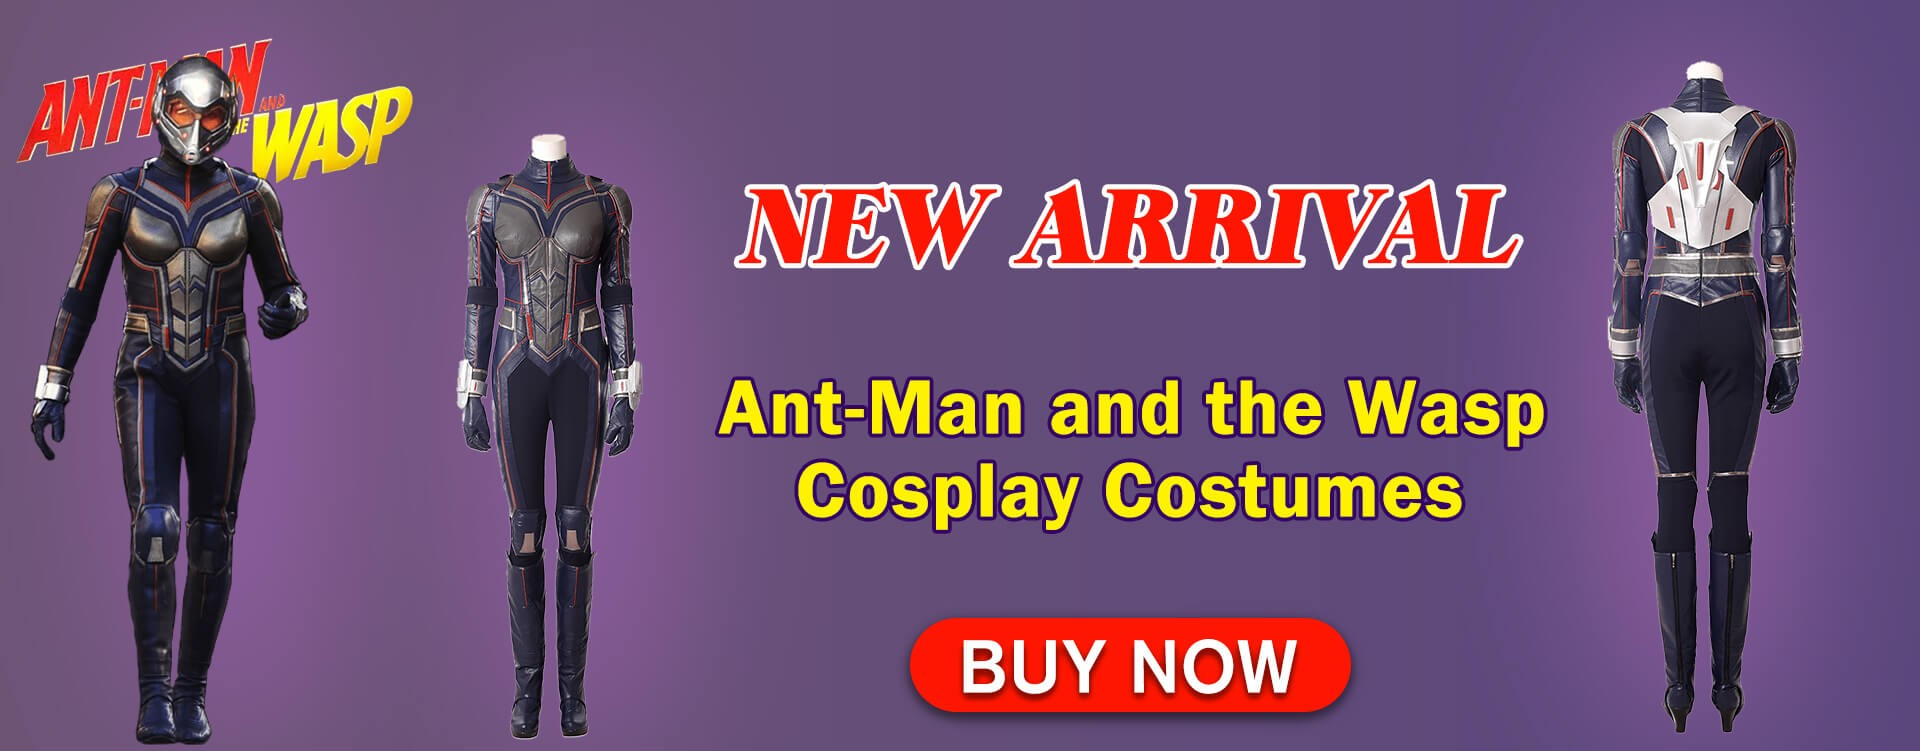 The latest Ant-Man and the Wasp Cosplay Costumes is available on xcoos.Buy now !